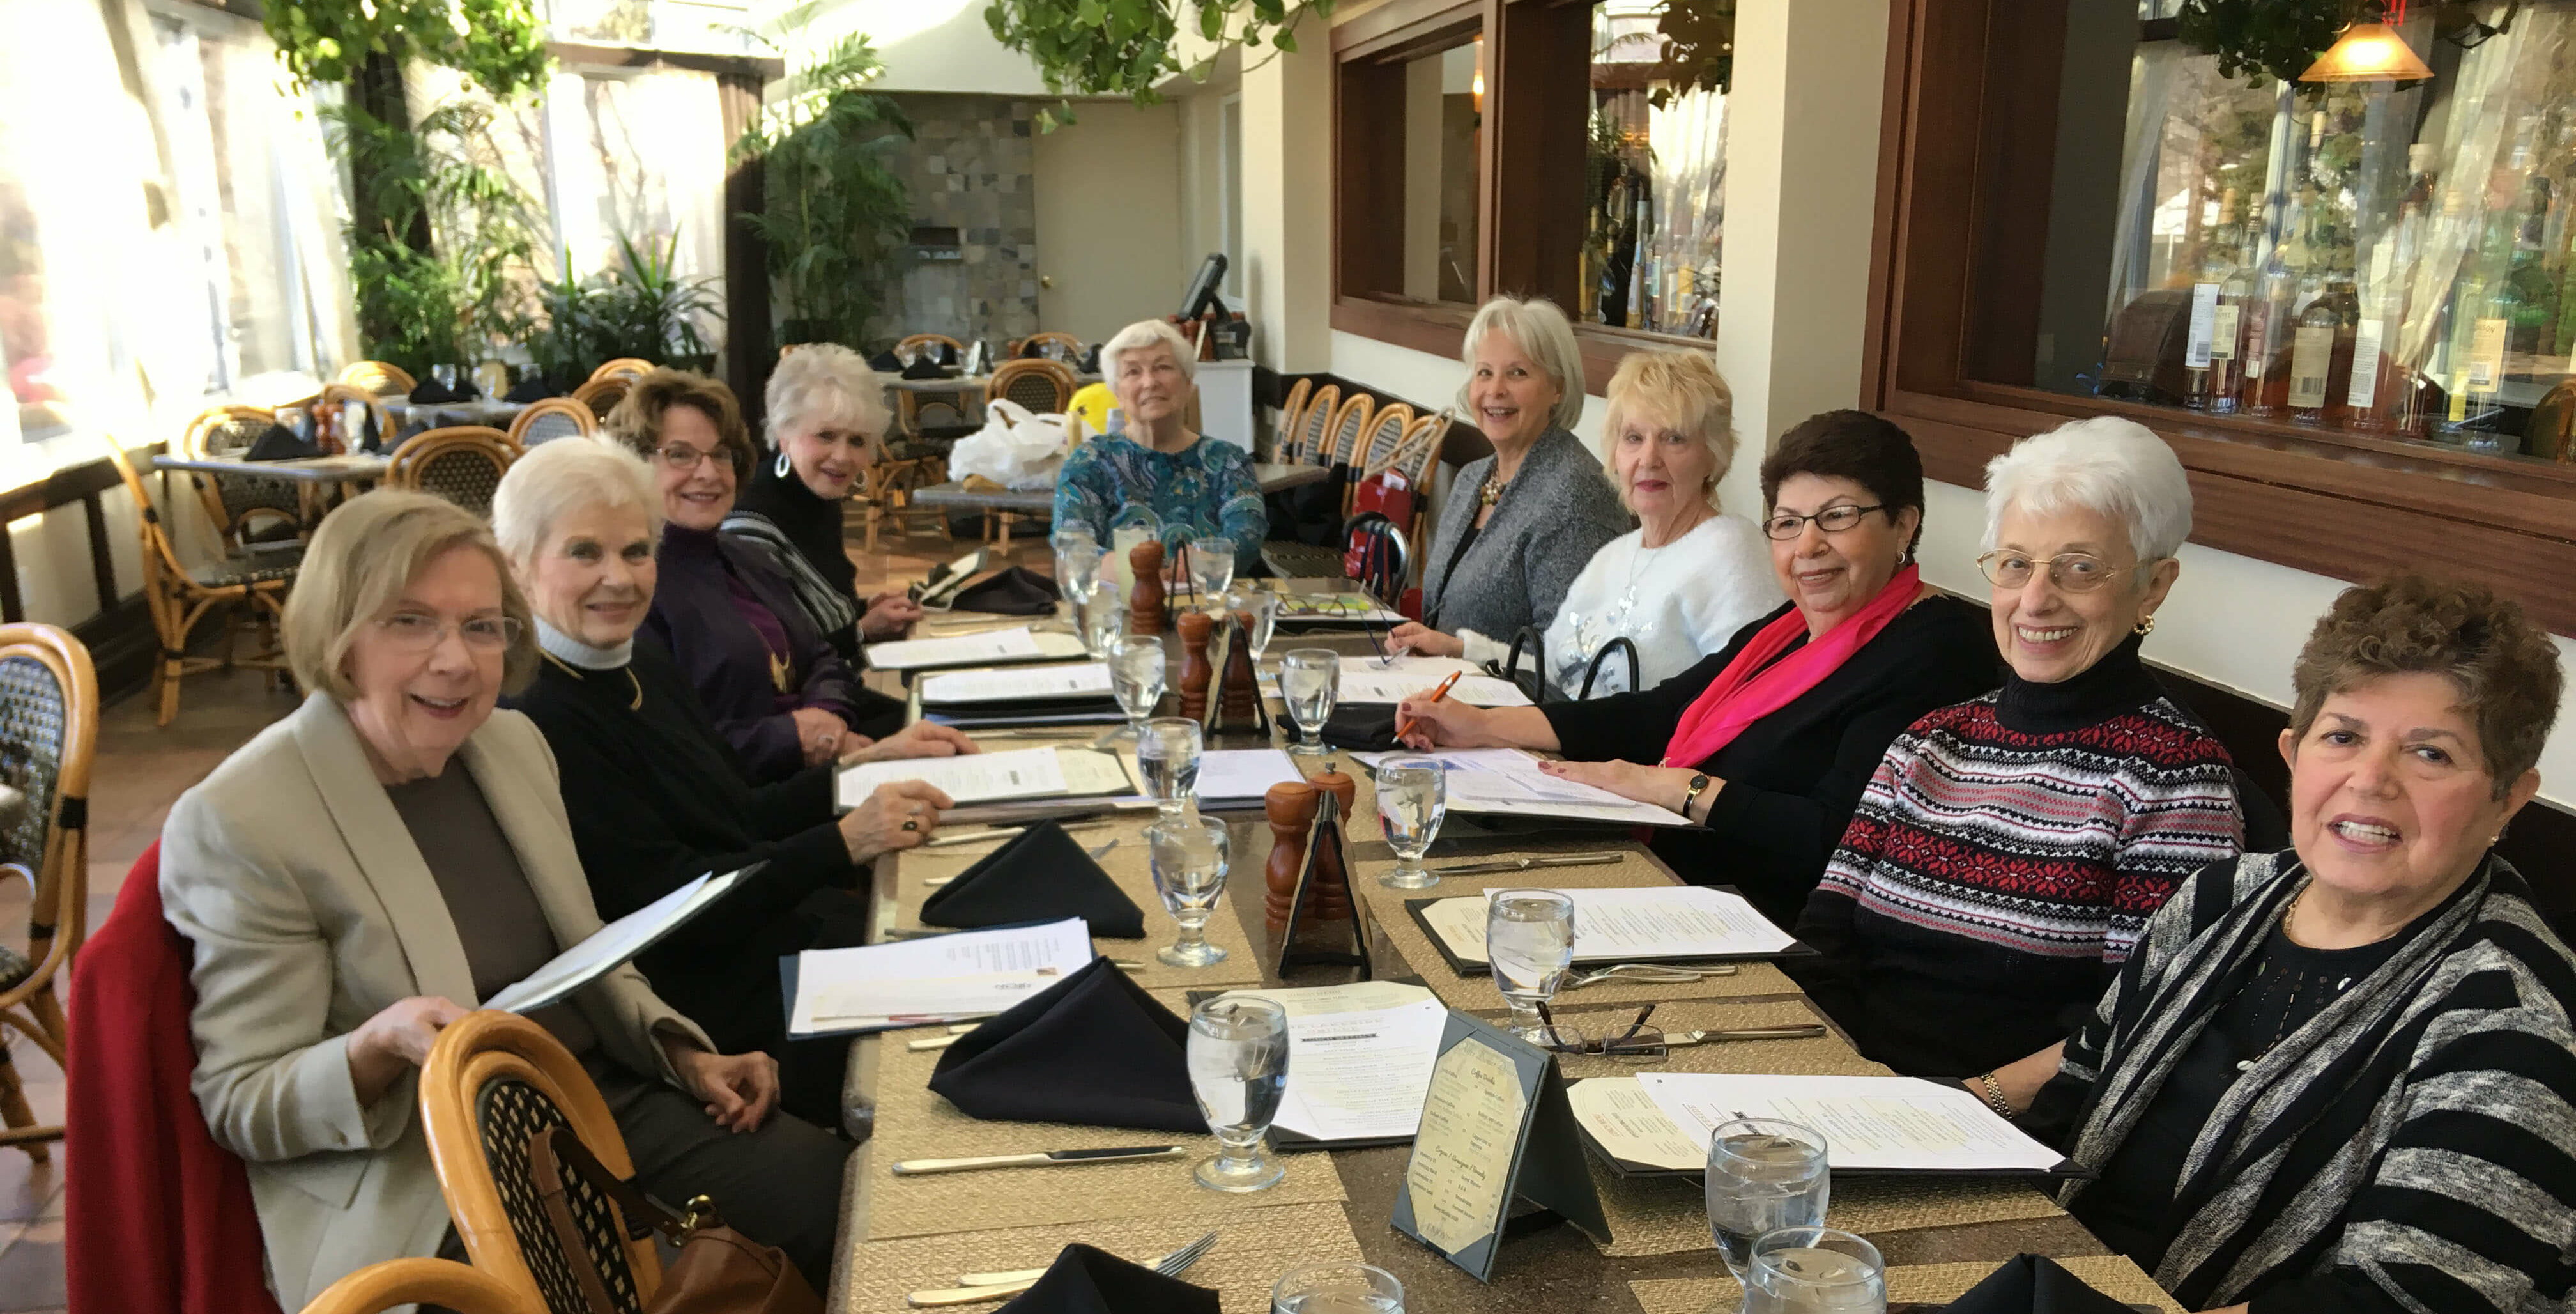 Woman's Club members kicked off their 2018 schedule with a January luncheon at the Ramsey Golf & Country Club. Enjoying the gathering are, from left, Dolores de Vinck, Marjorie Detweiler, Dorothy Verdone, Katie Parker, Helen Mekita, Kathy Ambrose, Pat Bernius, Tina Pellicciari, JoAnne Bockhorn and Julliet Borgersen.